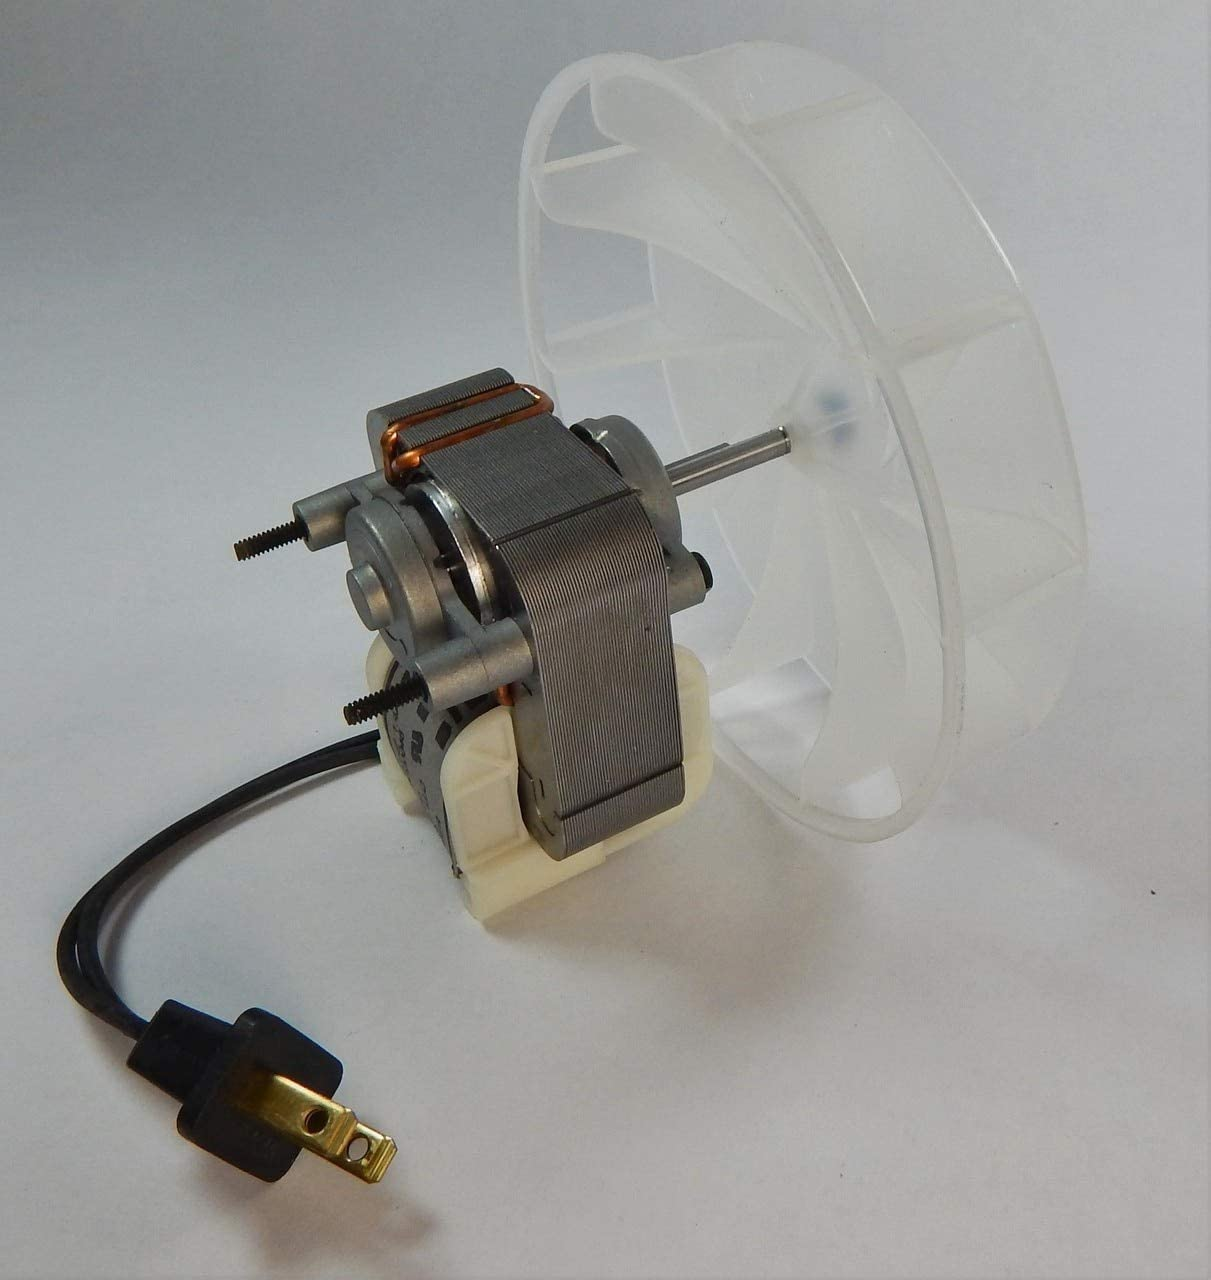 Motor and Blower